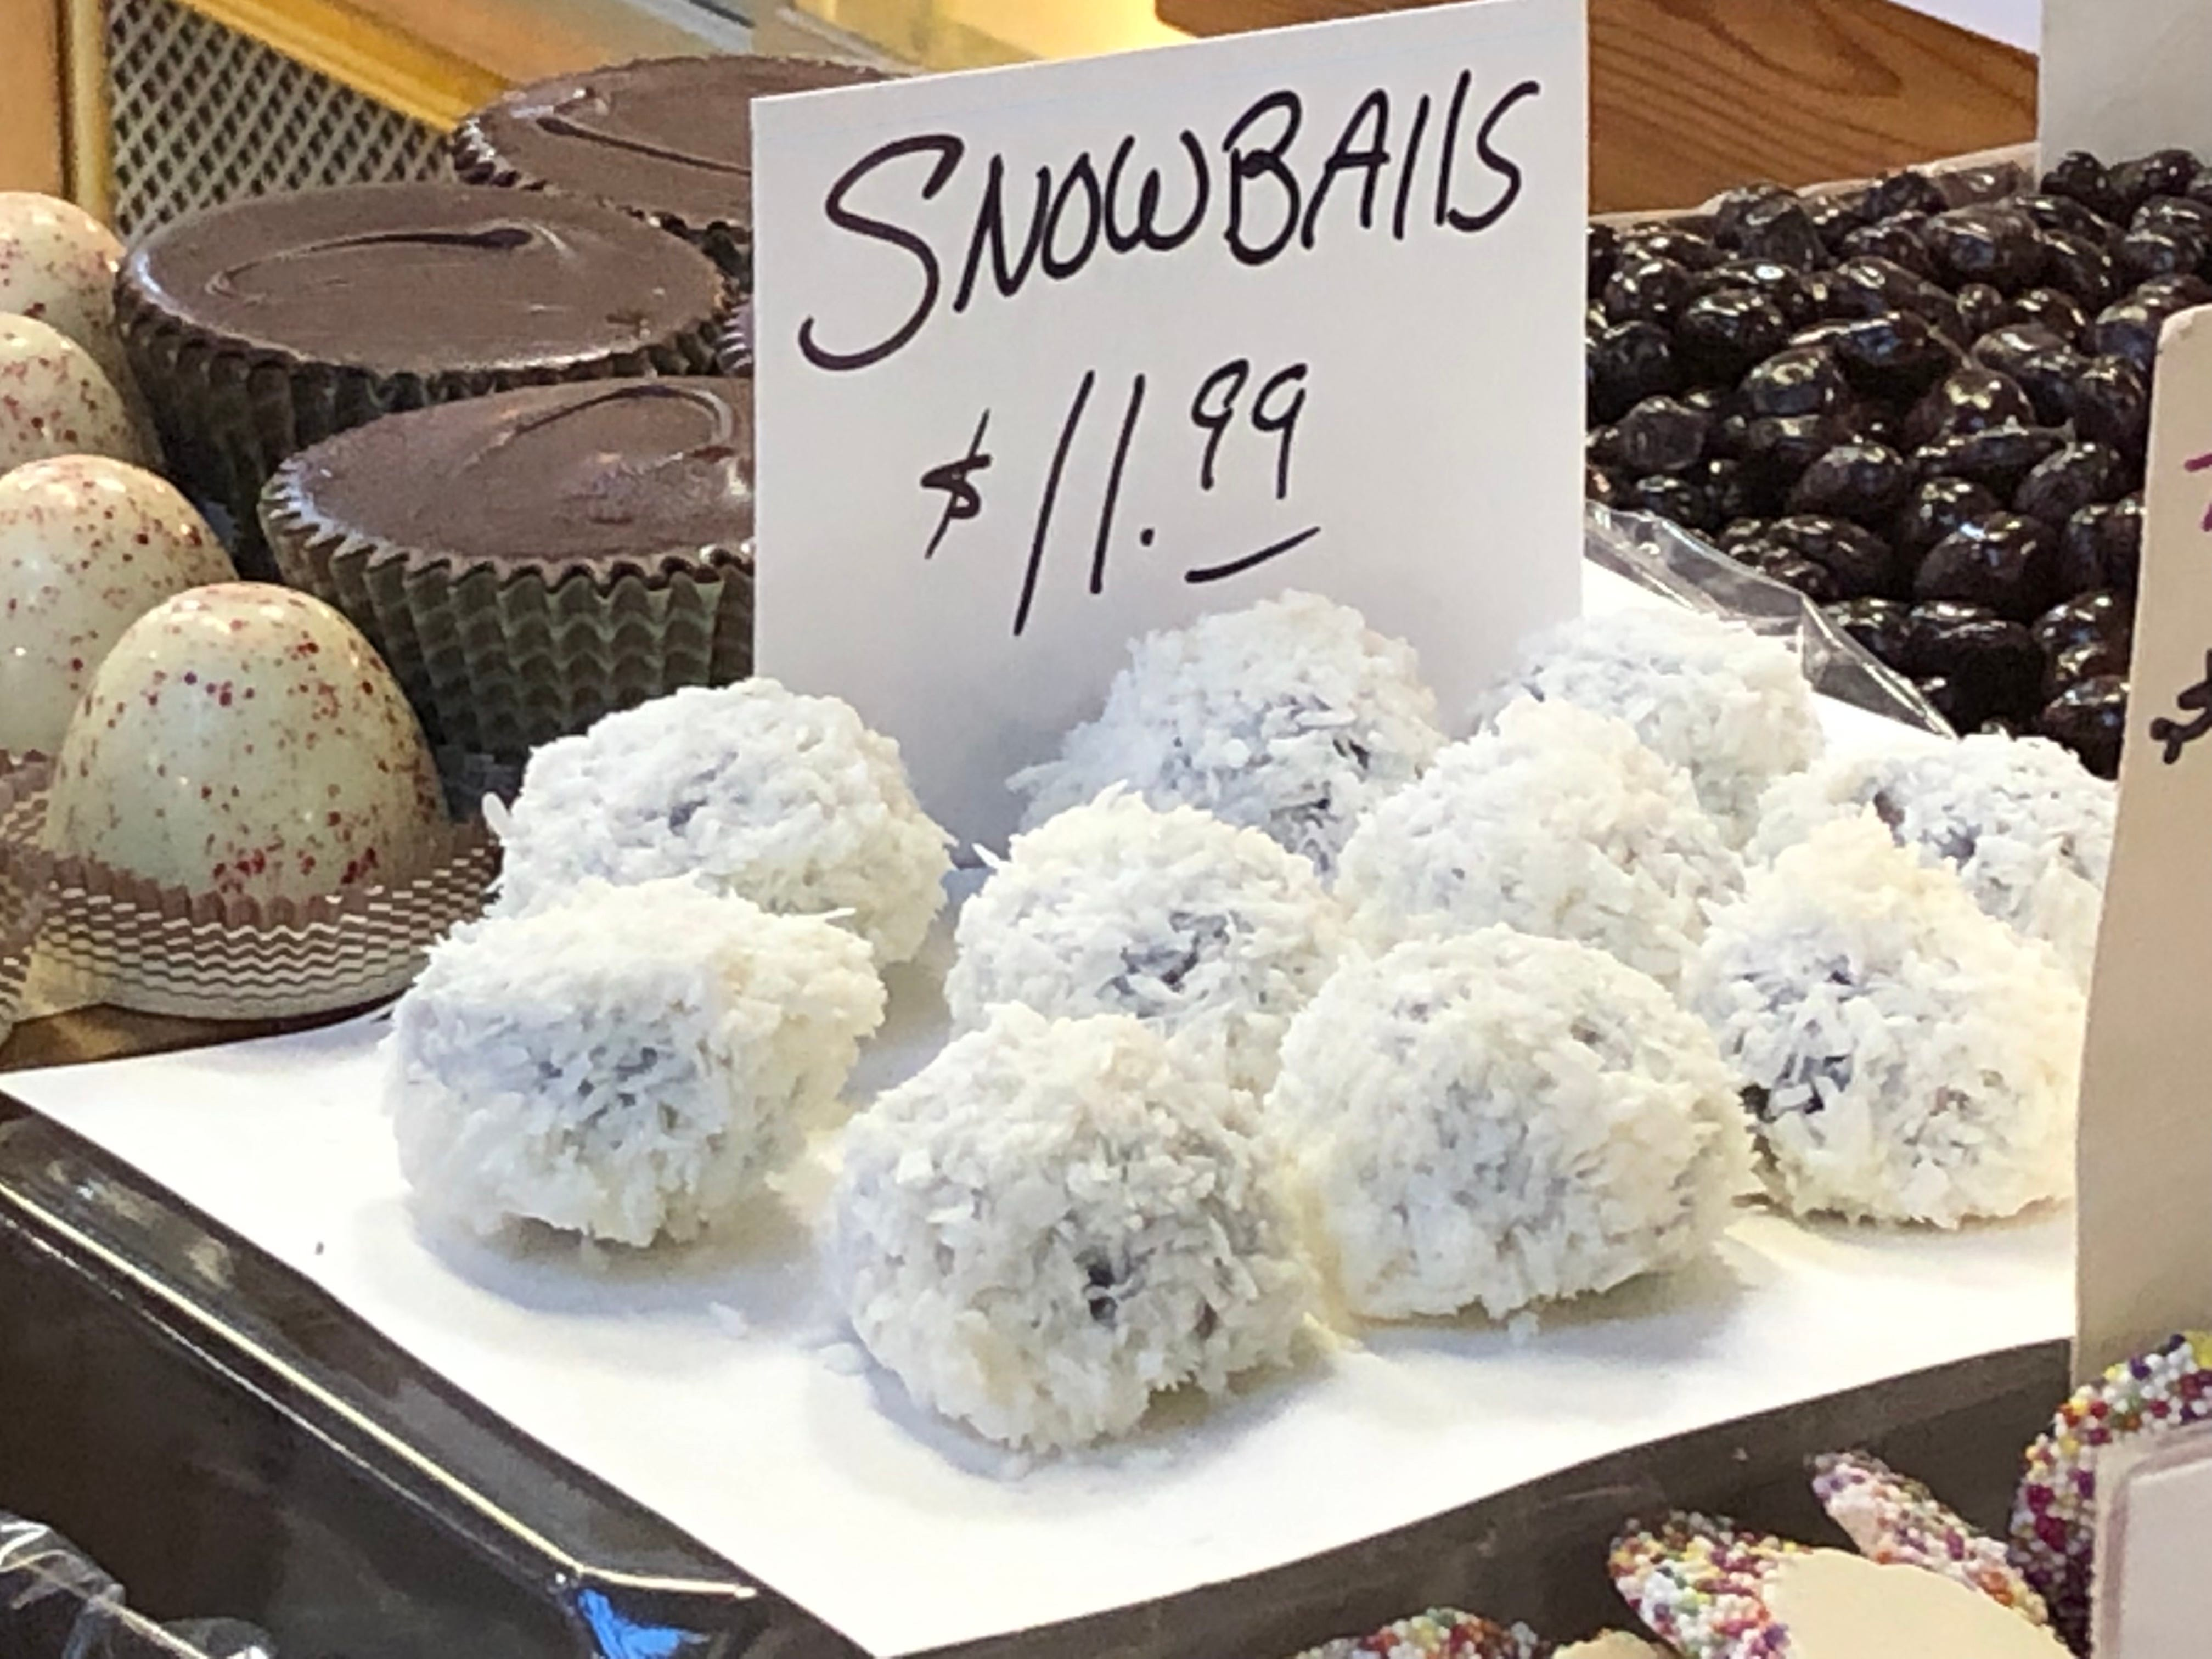 These coconut-covered snowballs contain chocolate cookie and creamy nougat inside, plus fit perfectly with a holiday/winter theme.